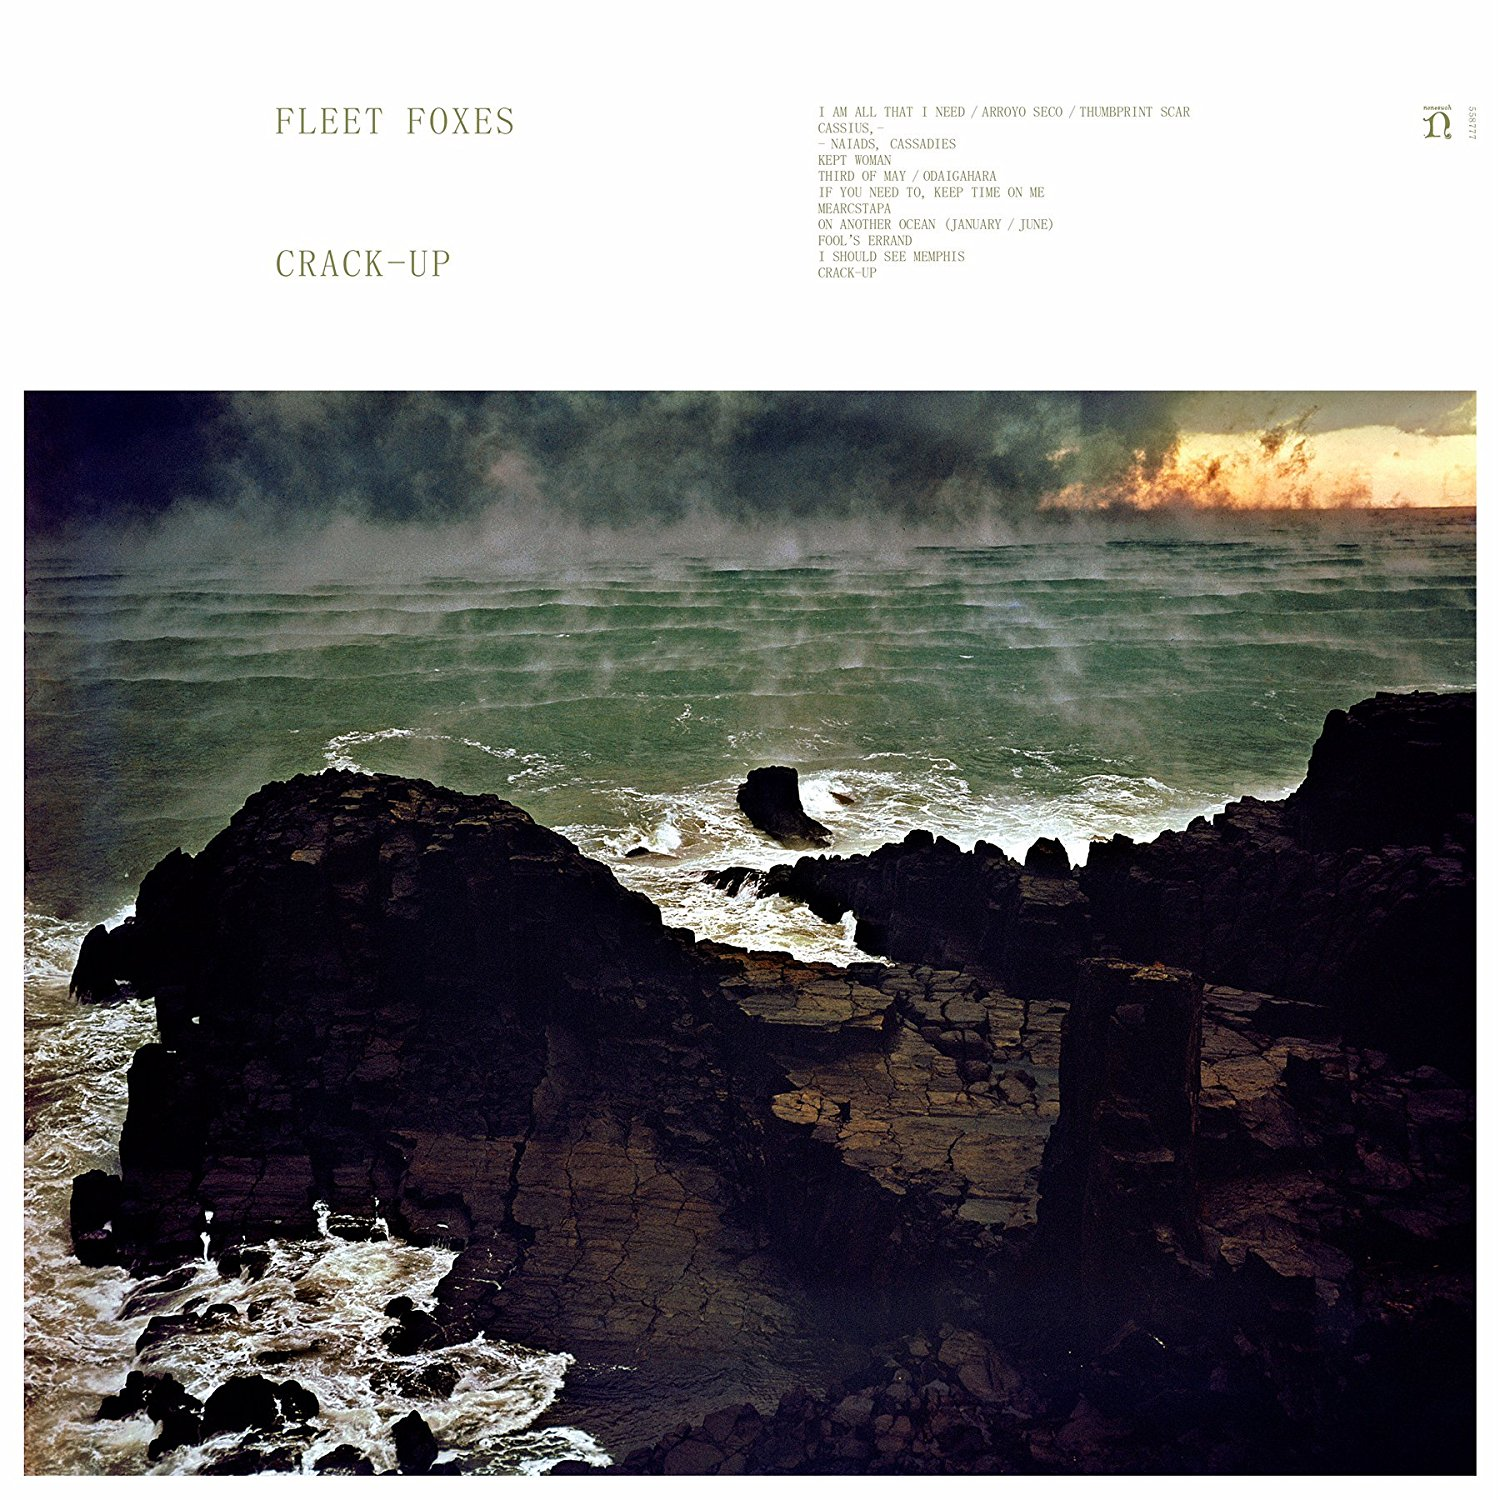 Fleet Foxes, Crack-Up | Album Review